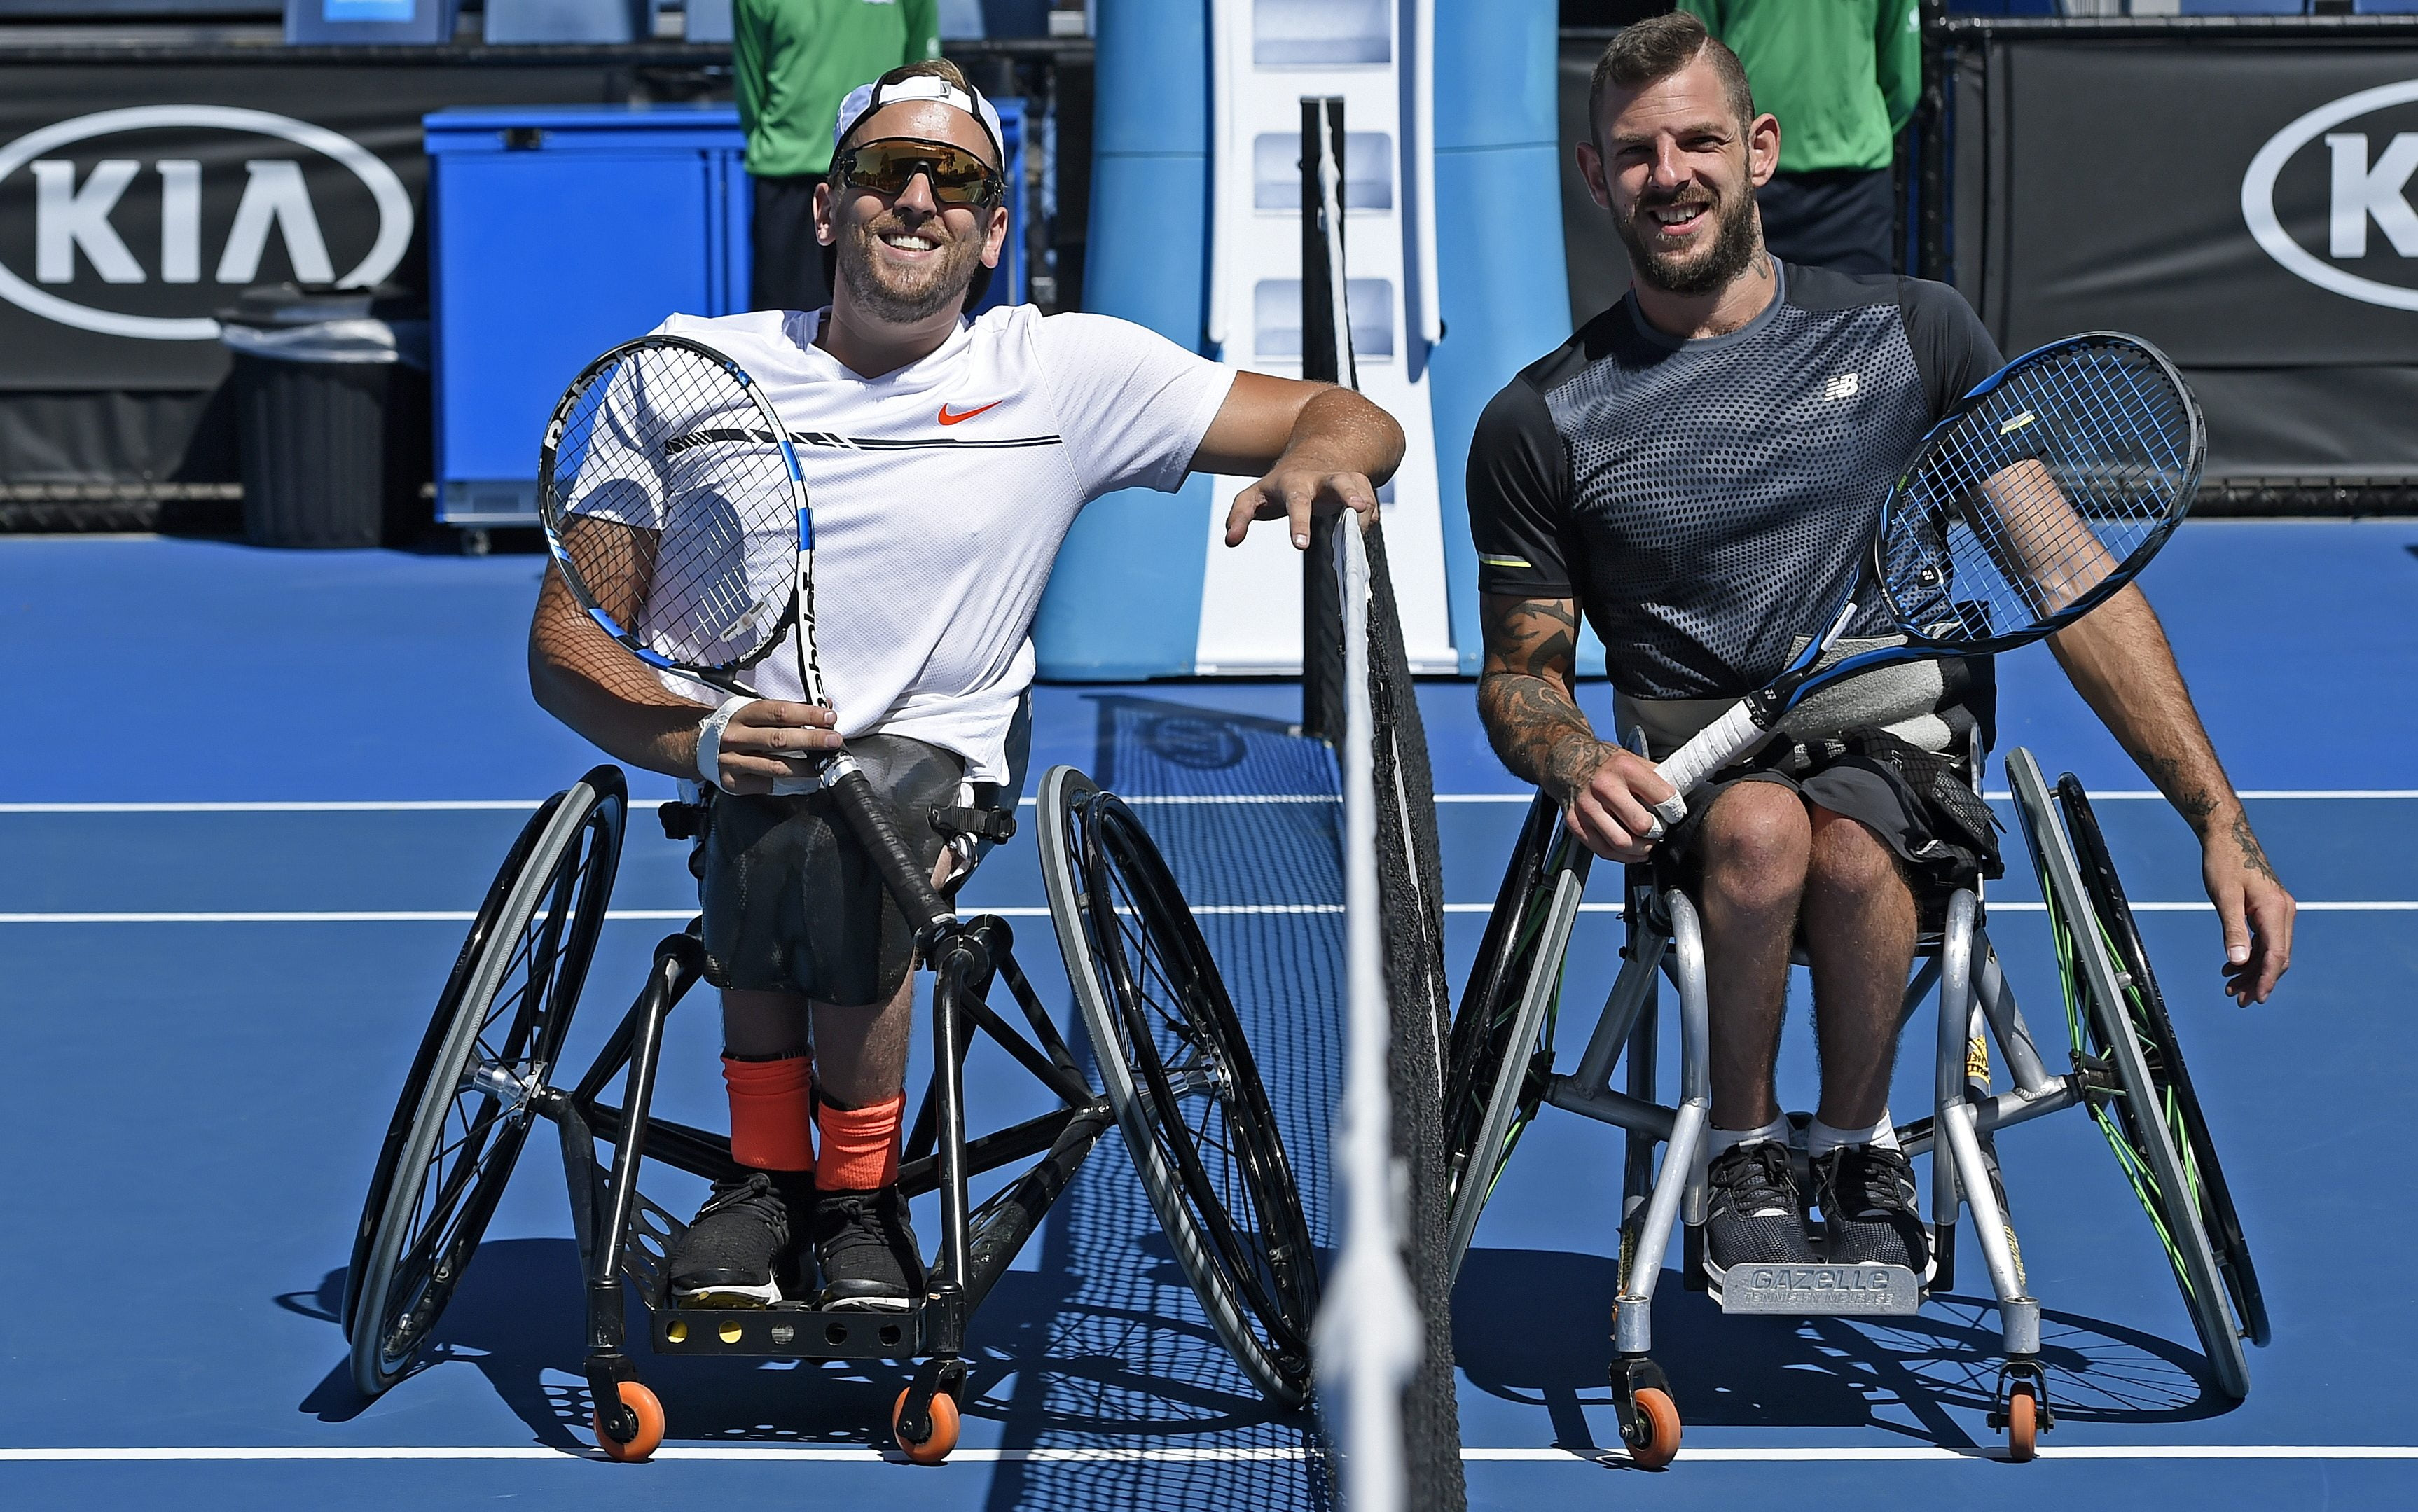 Alcott undefeated on day one of the Australian Open